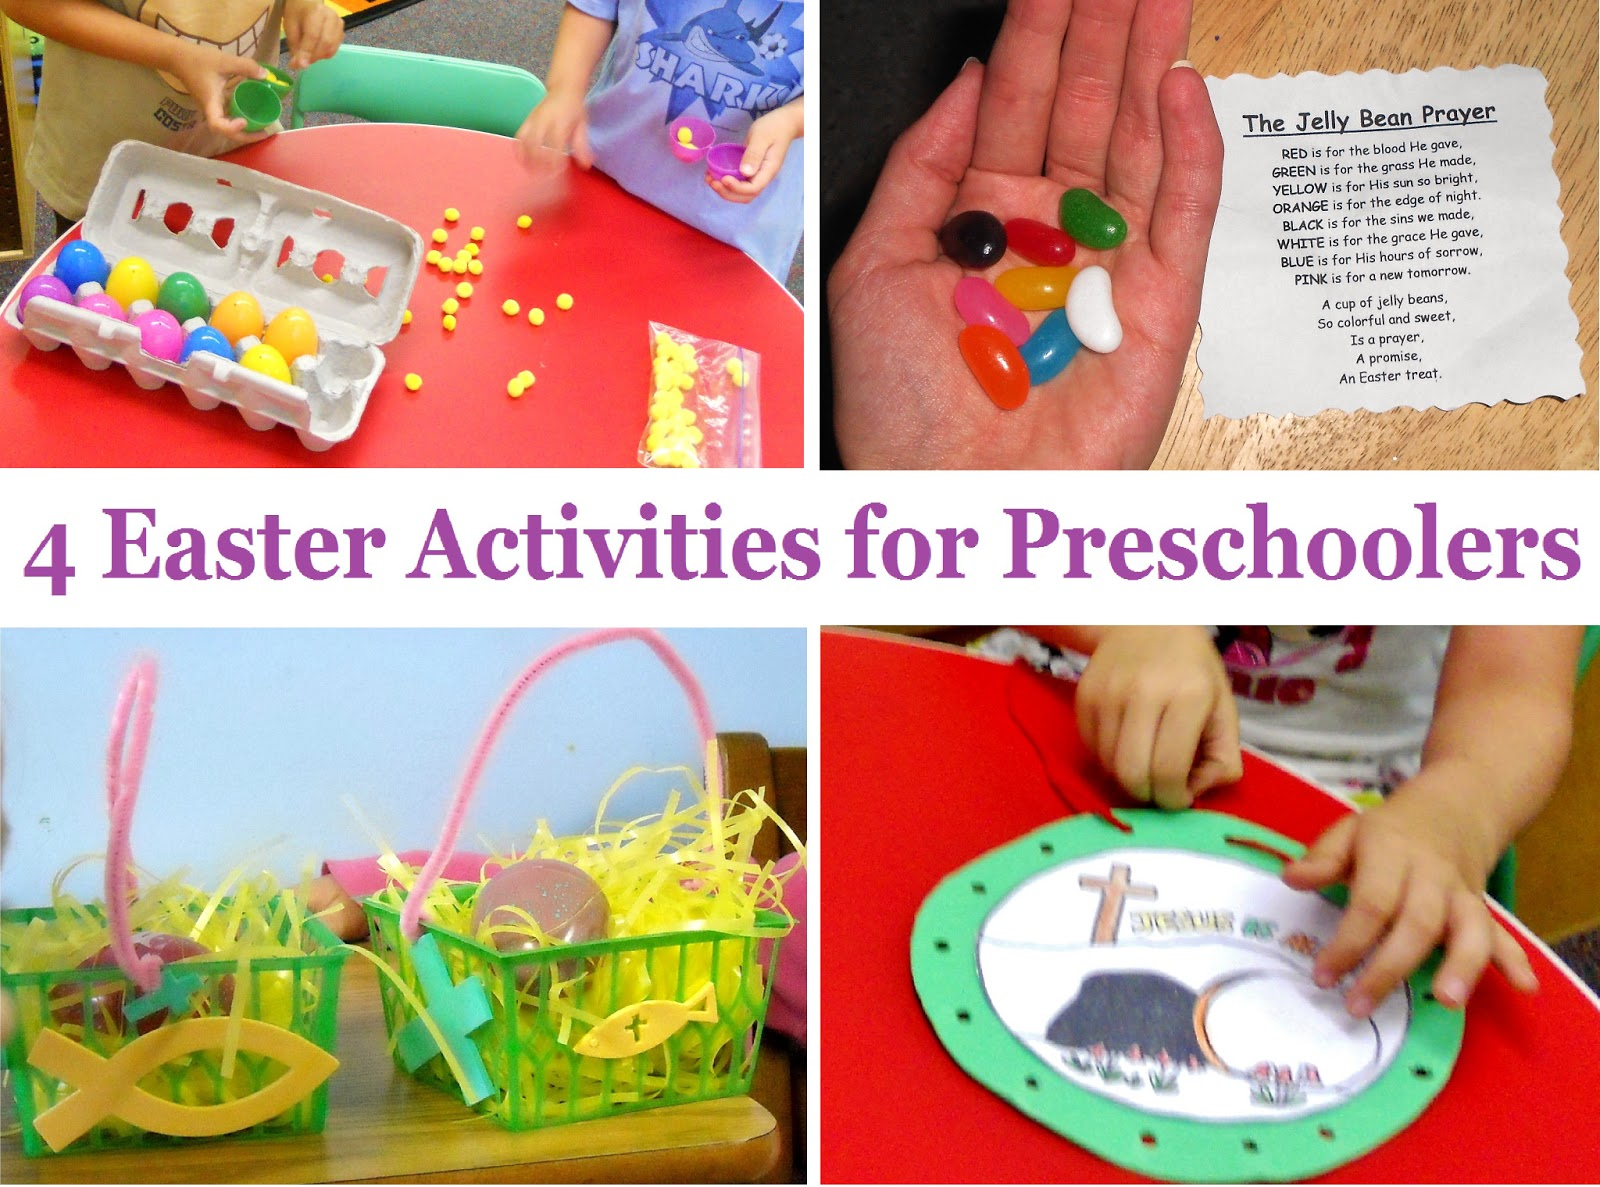 Princesses Pies Amp Preschool Pizzazz 4 More Easter Activities For Preschoolers